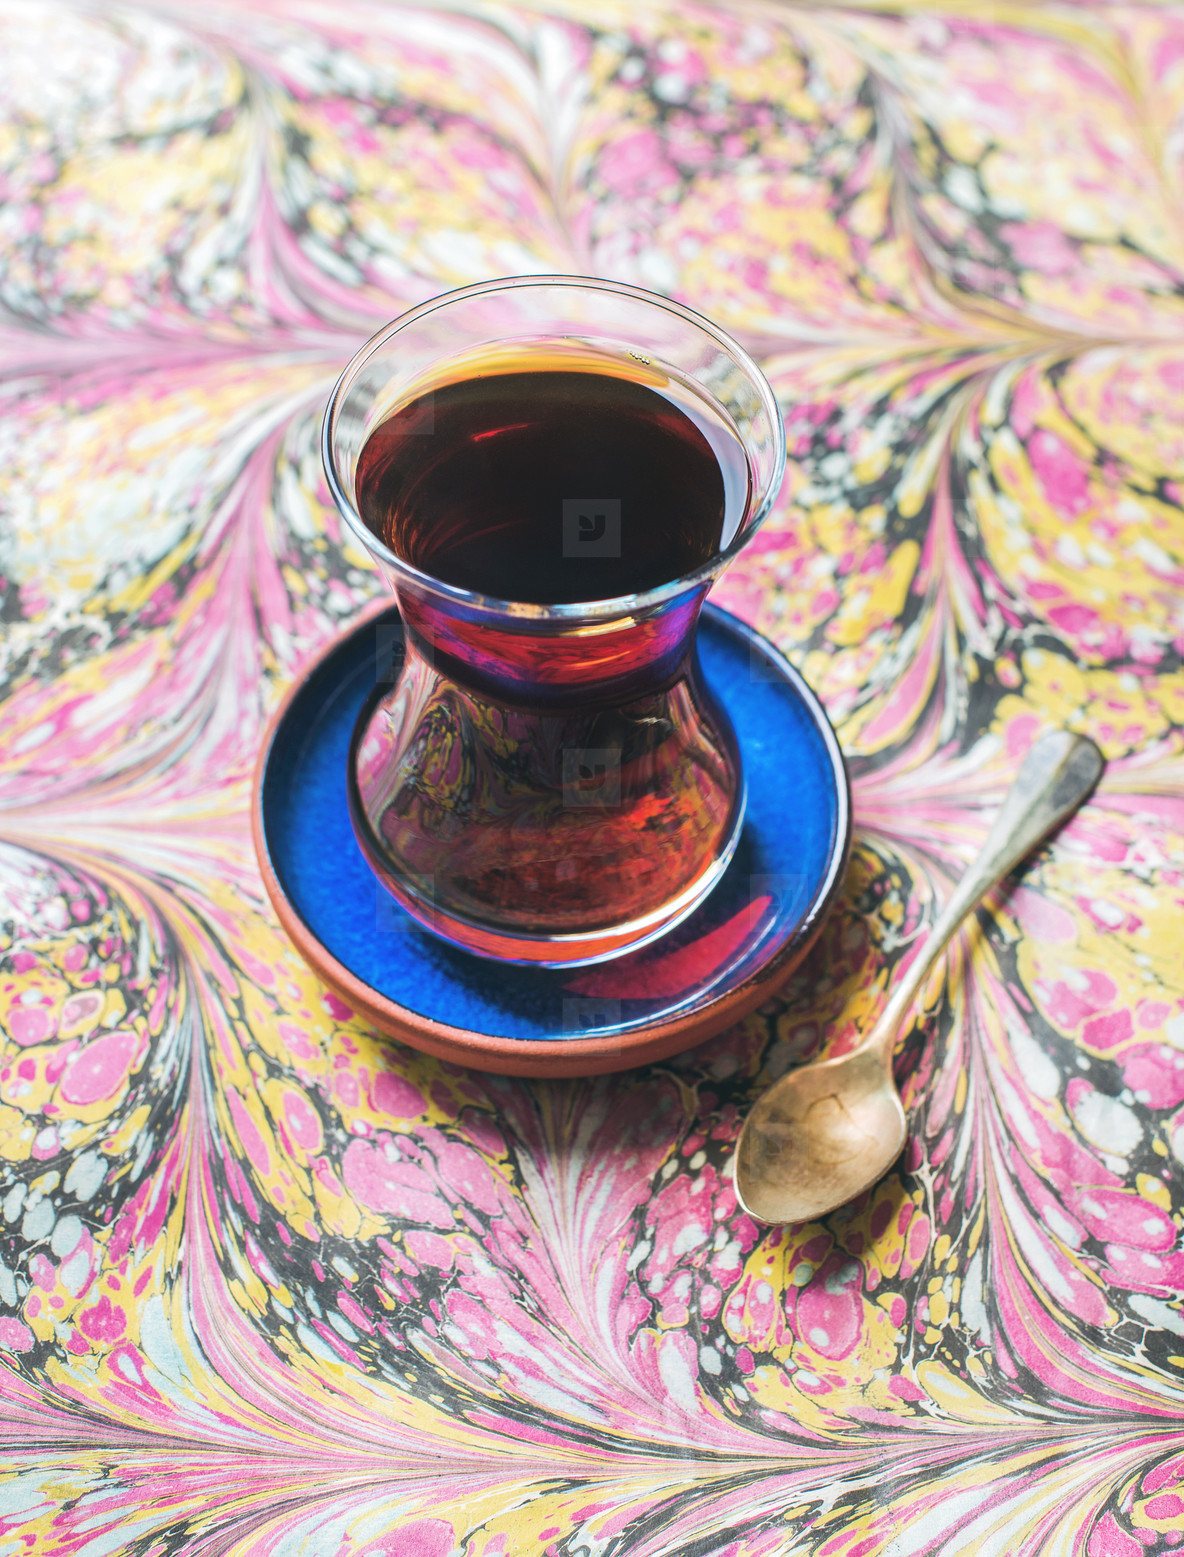 Turkish tea in traditional oriental tulip glass over colorful background